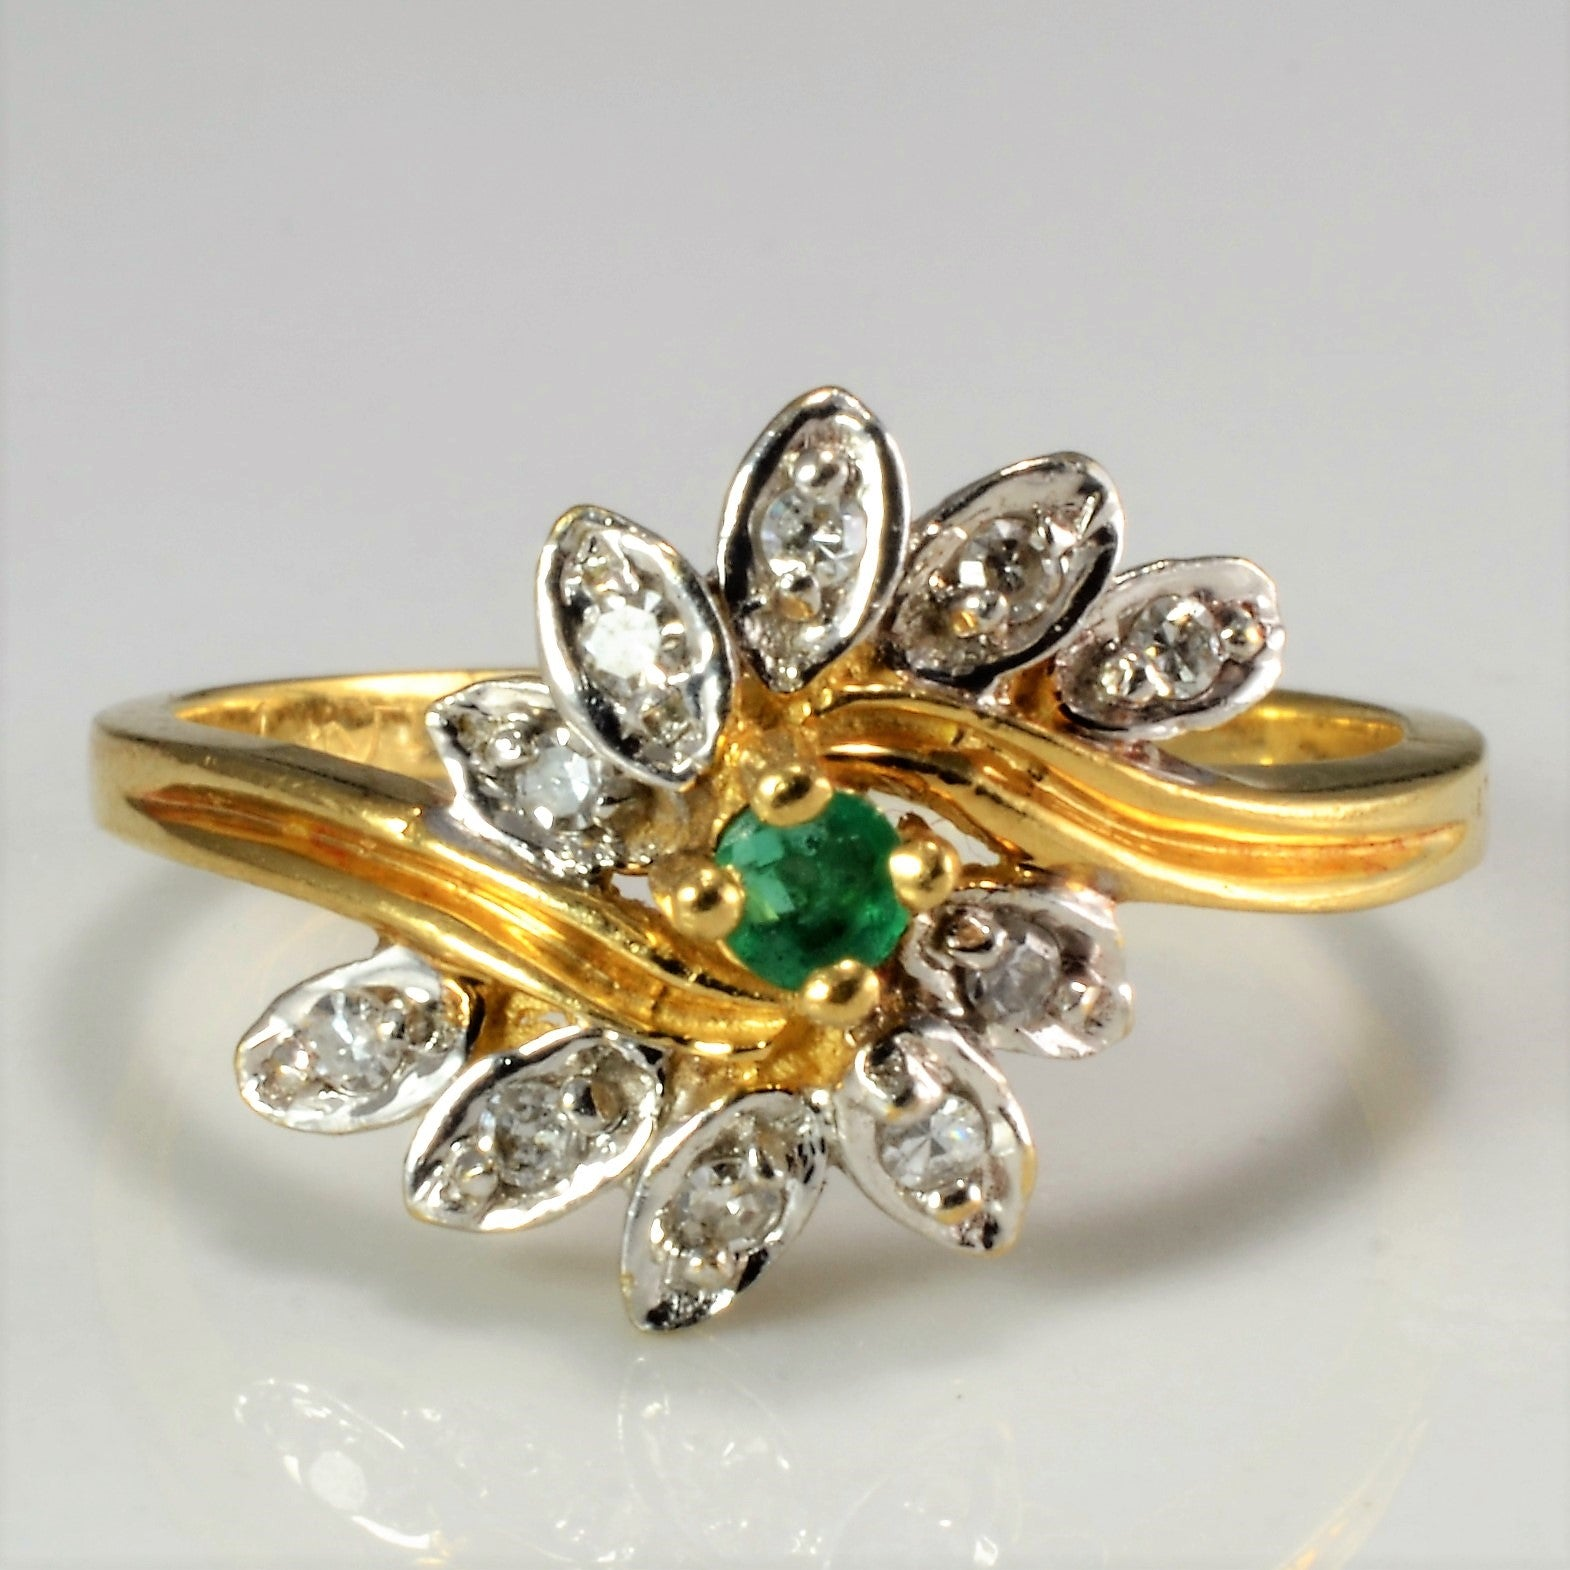 Bypass Emerald & Diamond Floral Ring | 0 09 ctw, SZ 6 |